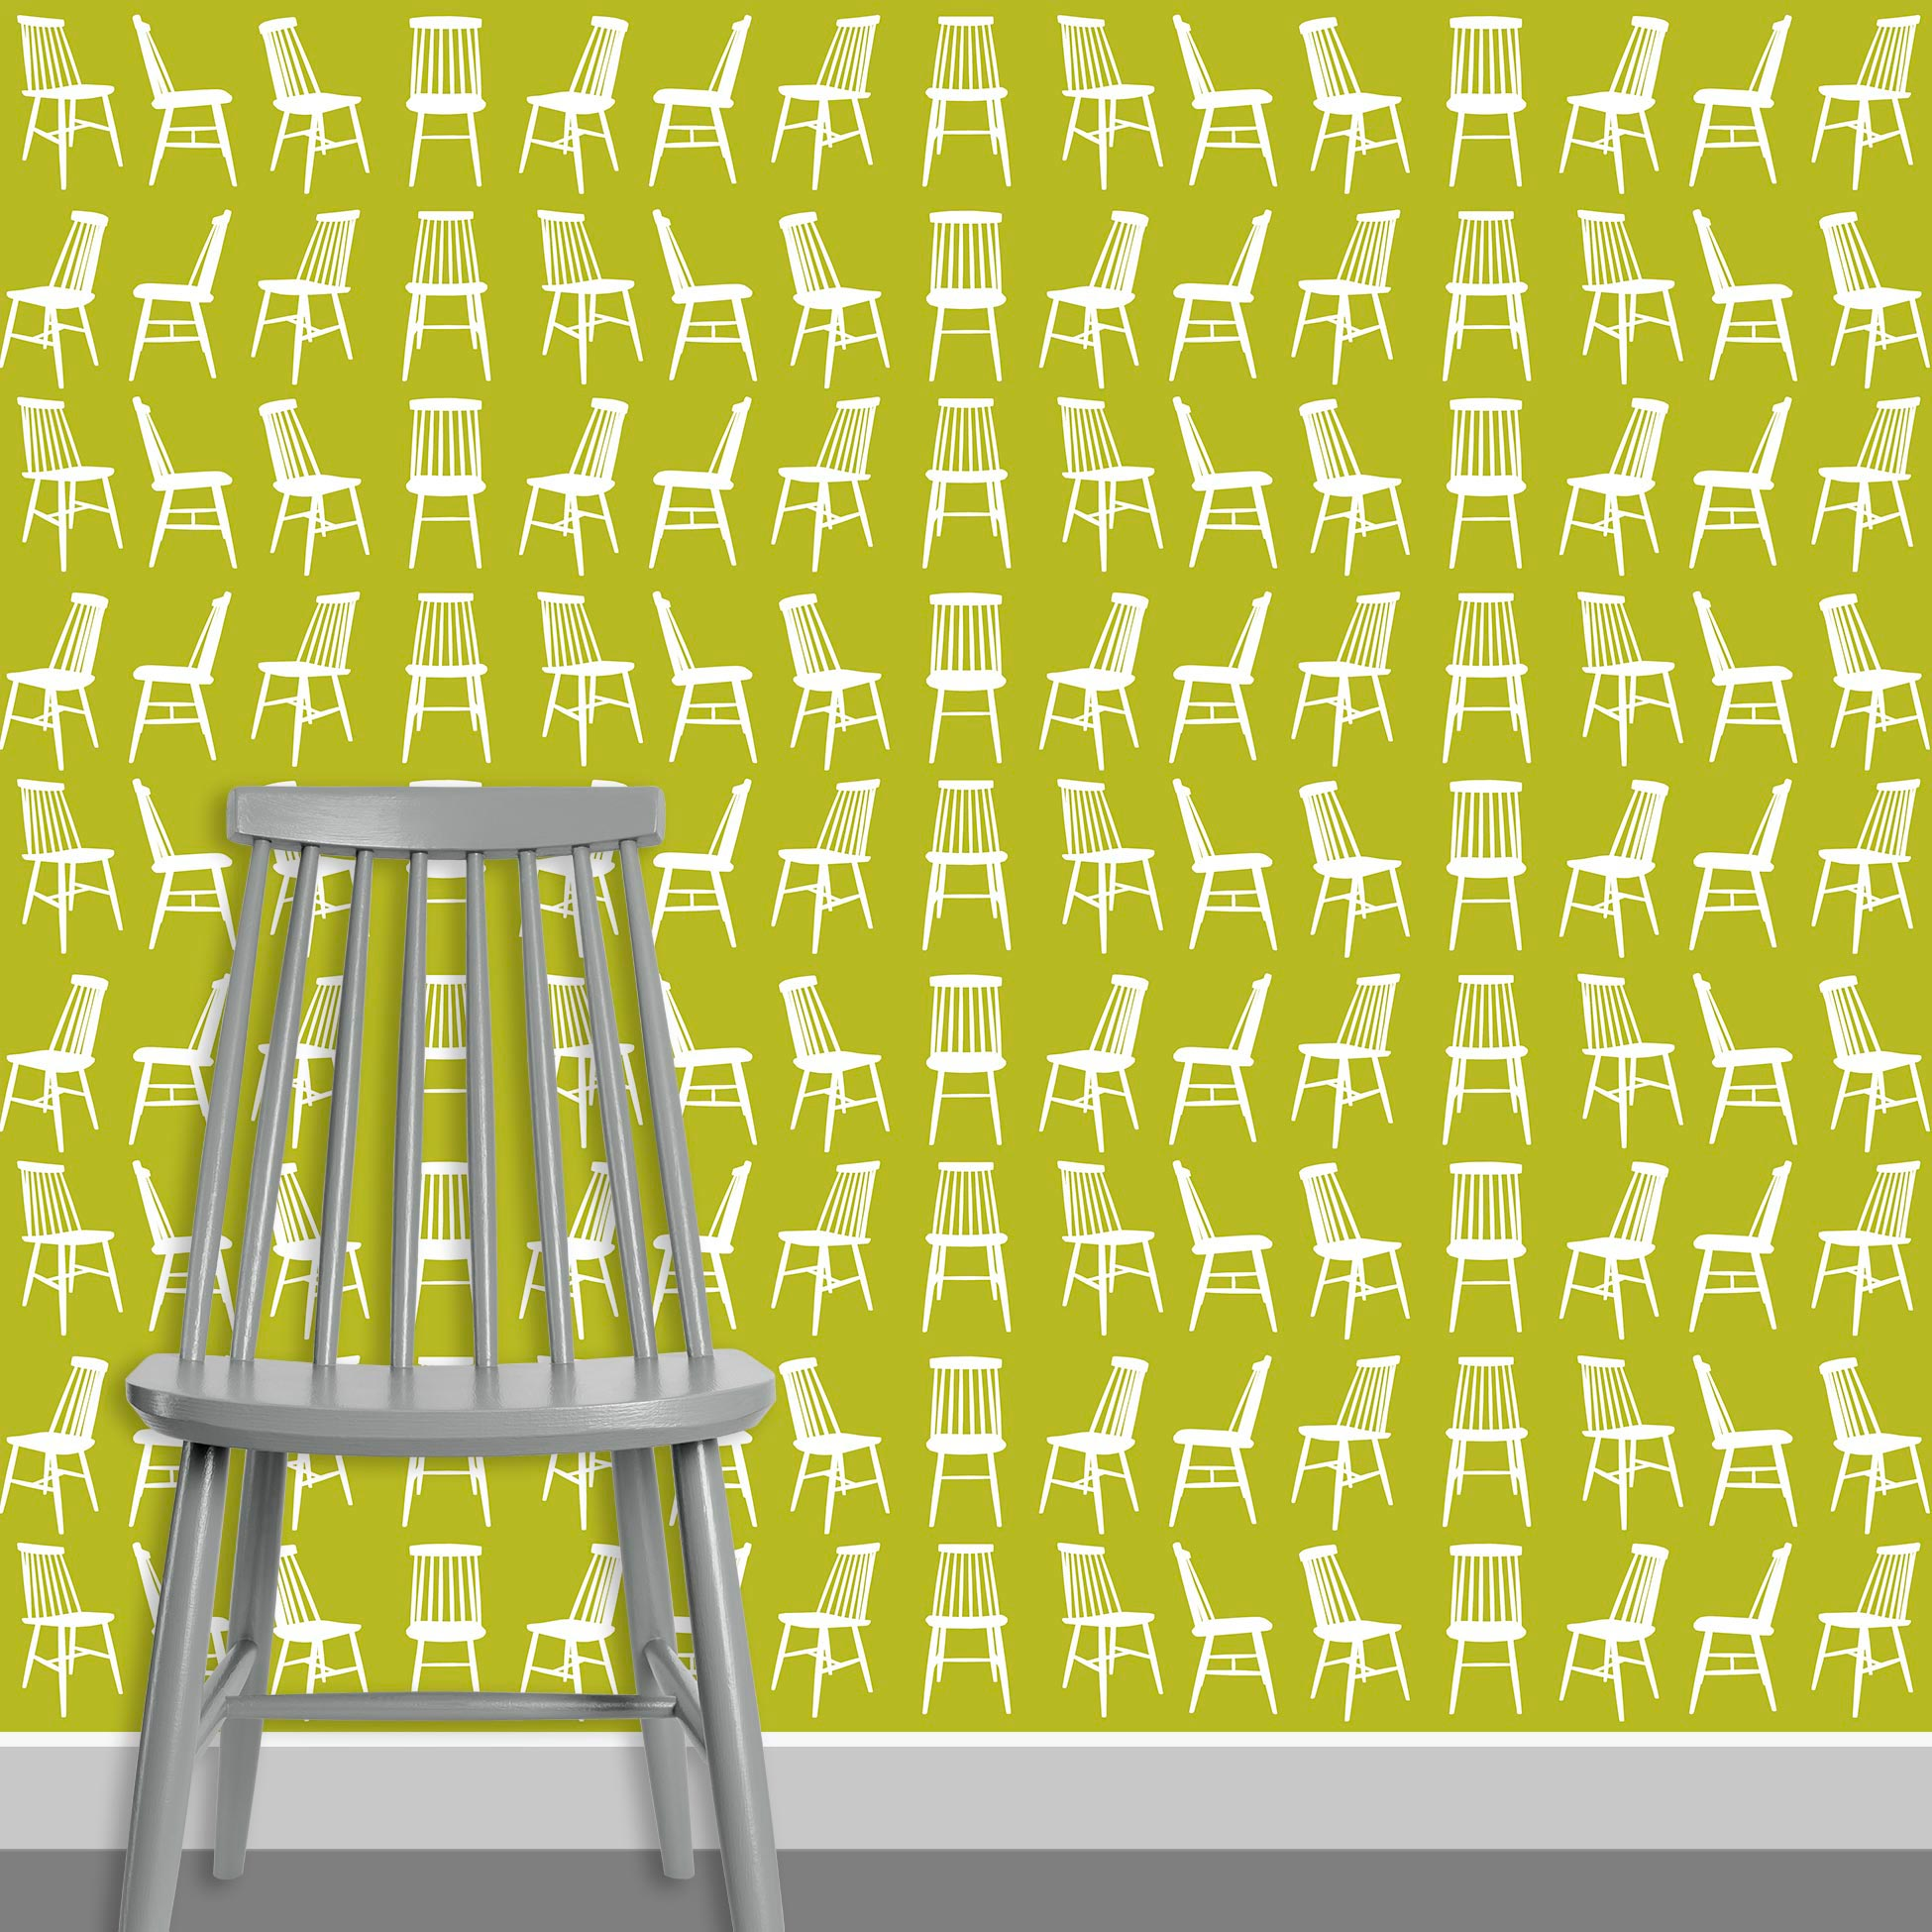 Contact Page Square - Mid Century Modern Chairs Pattern Design 6